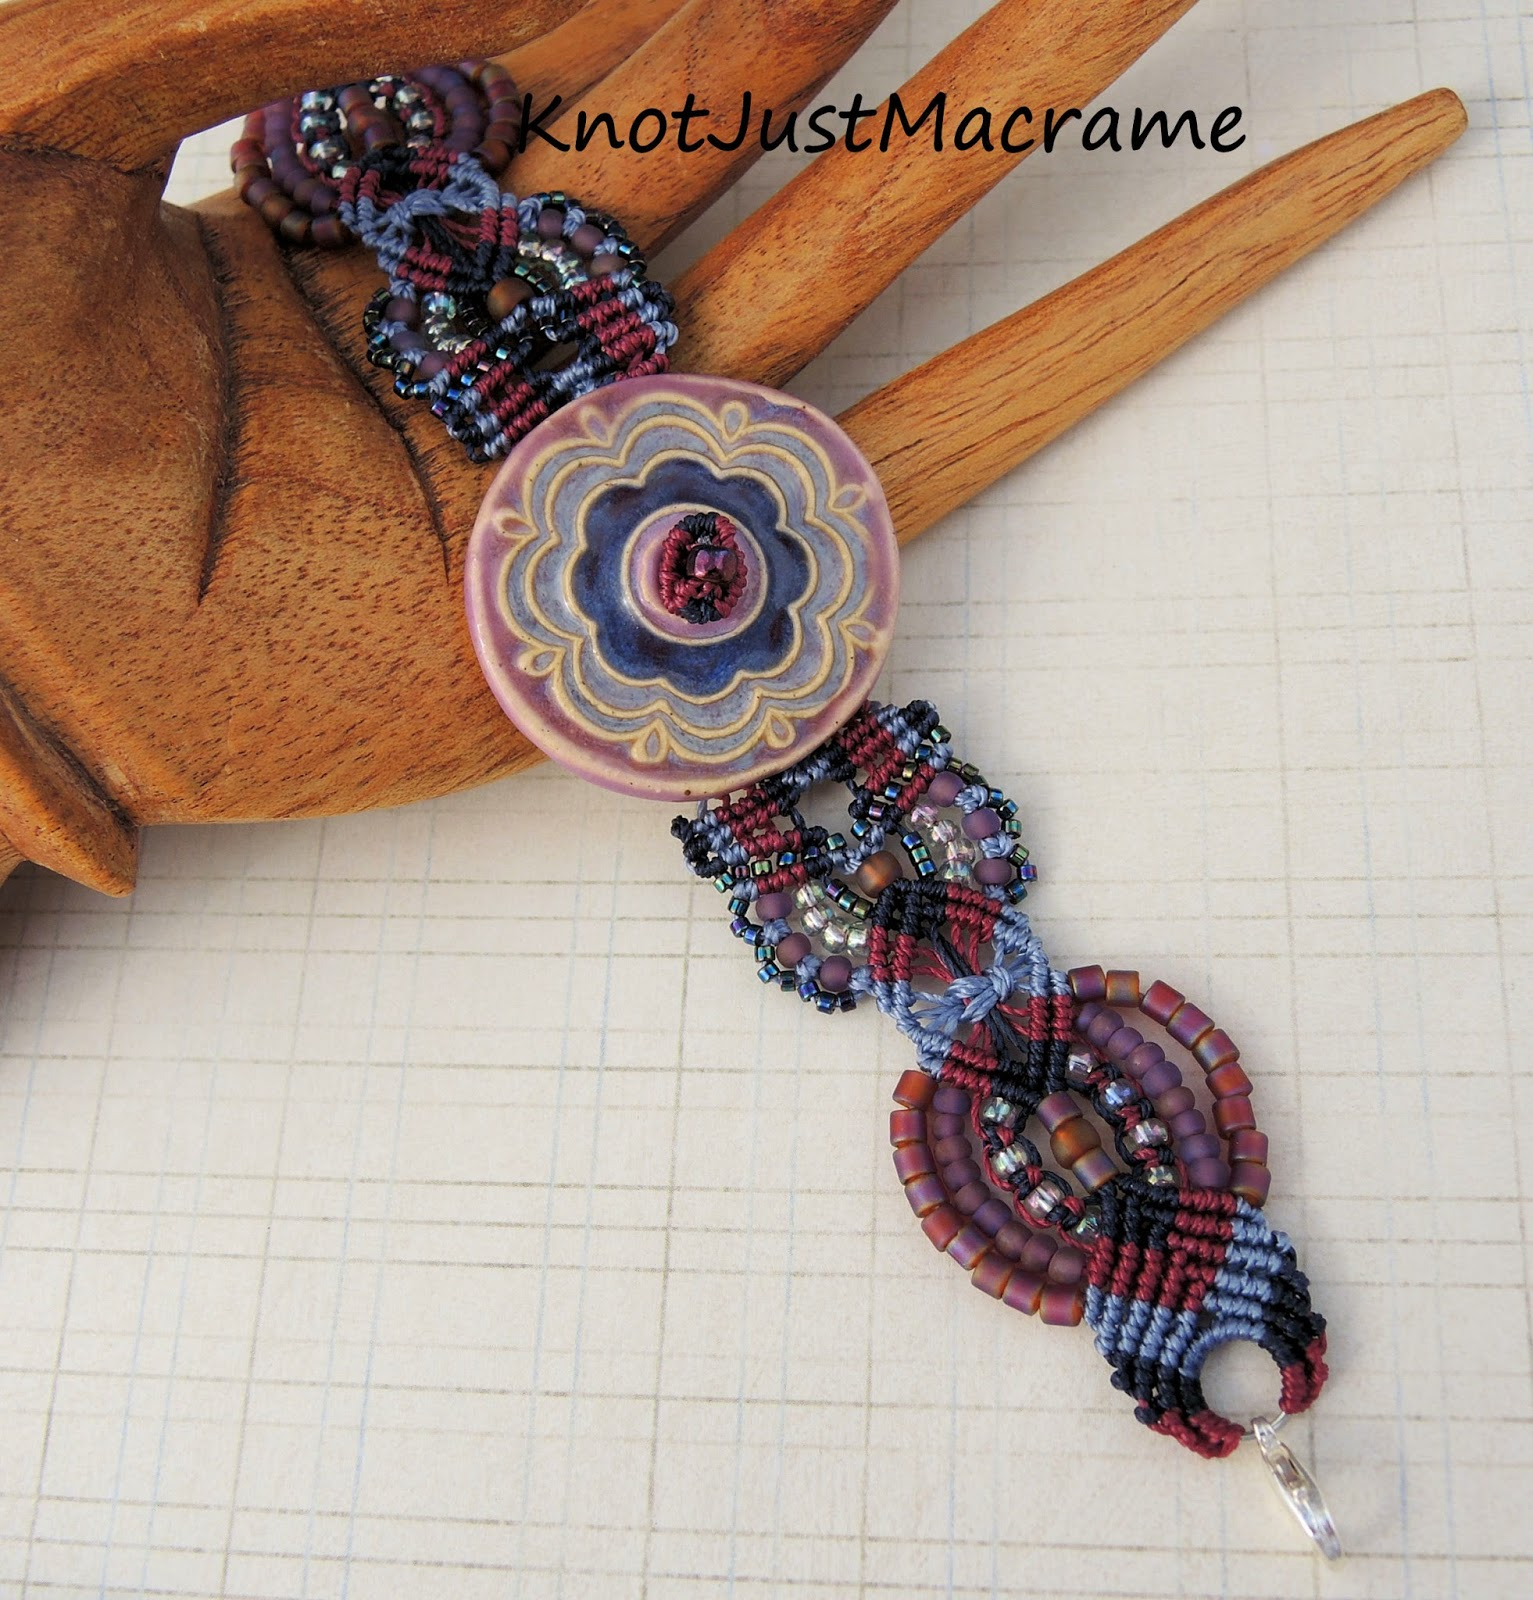 Macrame bracelet by Sherri Stokey with ceramic focal by Tracee Dock